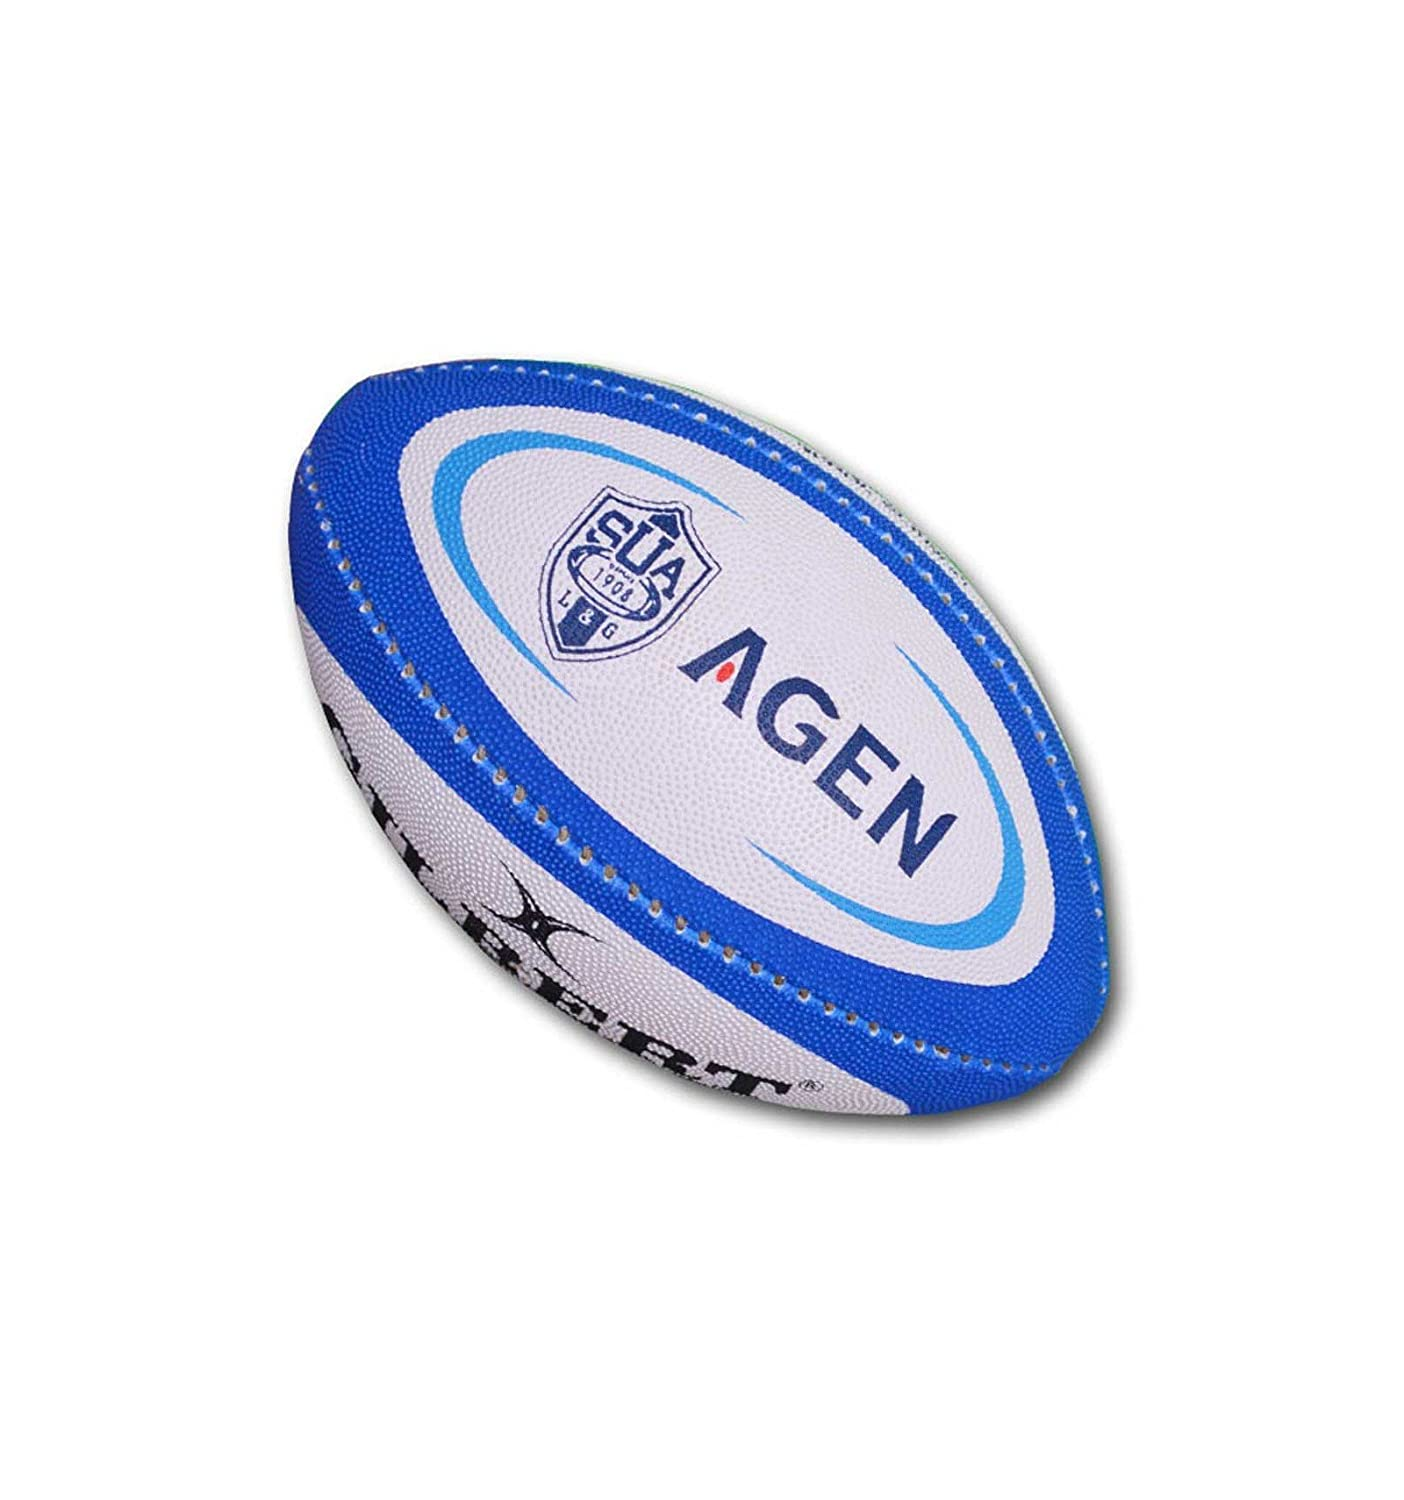 Balón Rugby – Agen Mini – Gilbert, MULTICOLOR: Amazon.es: Deportes ...